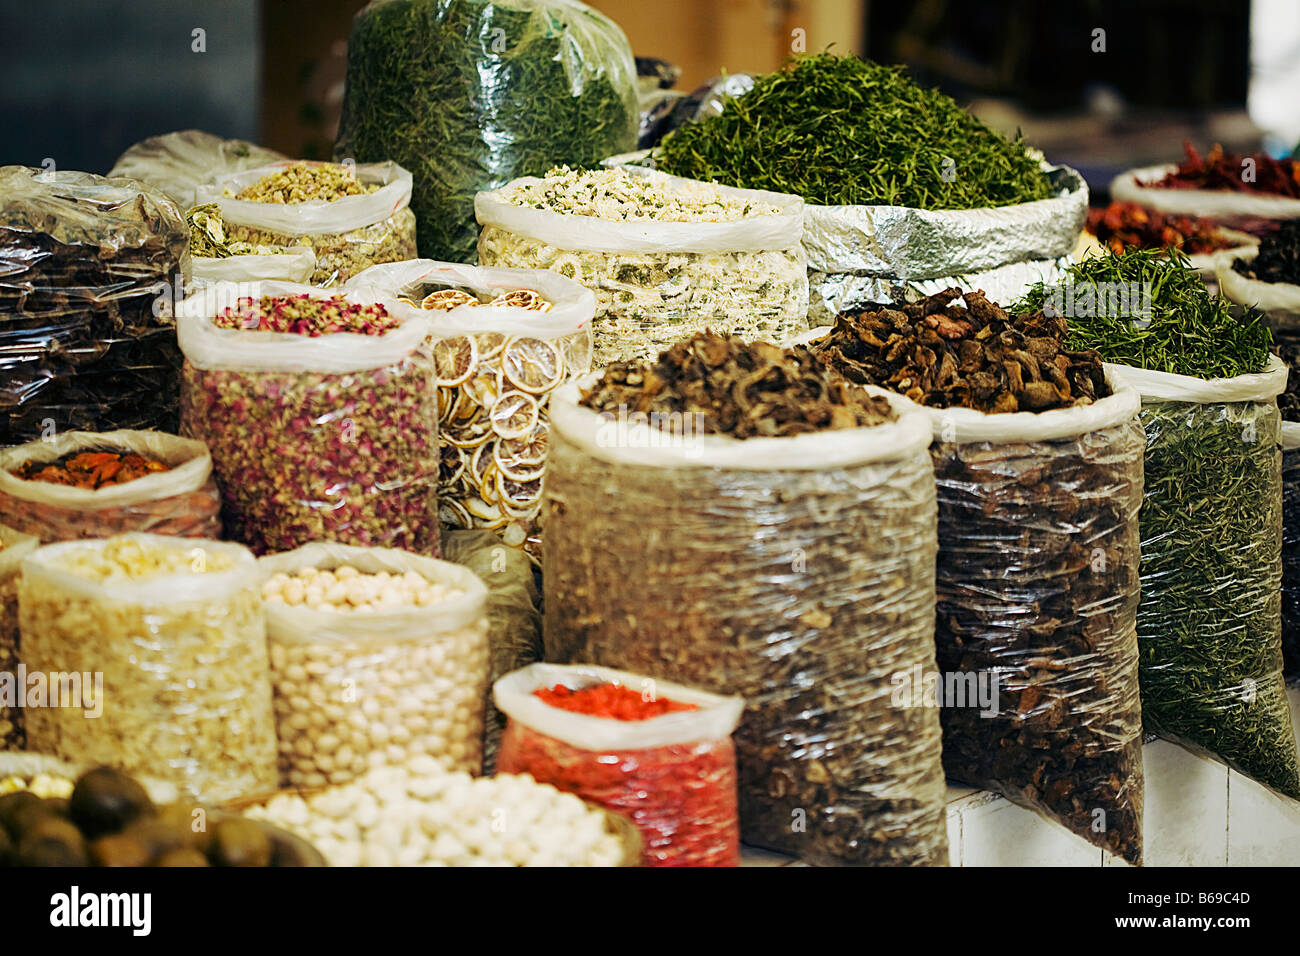 Sacks of herbs and spices at a market stall, Tai'an, Shandong Province, China - Stock Image